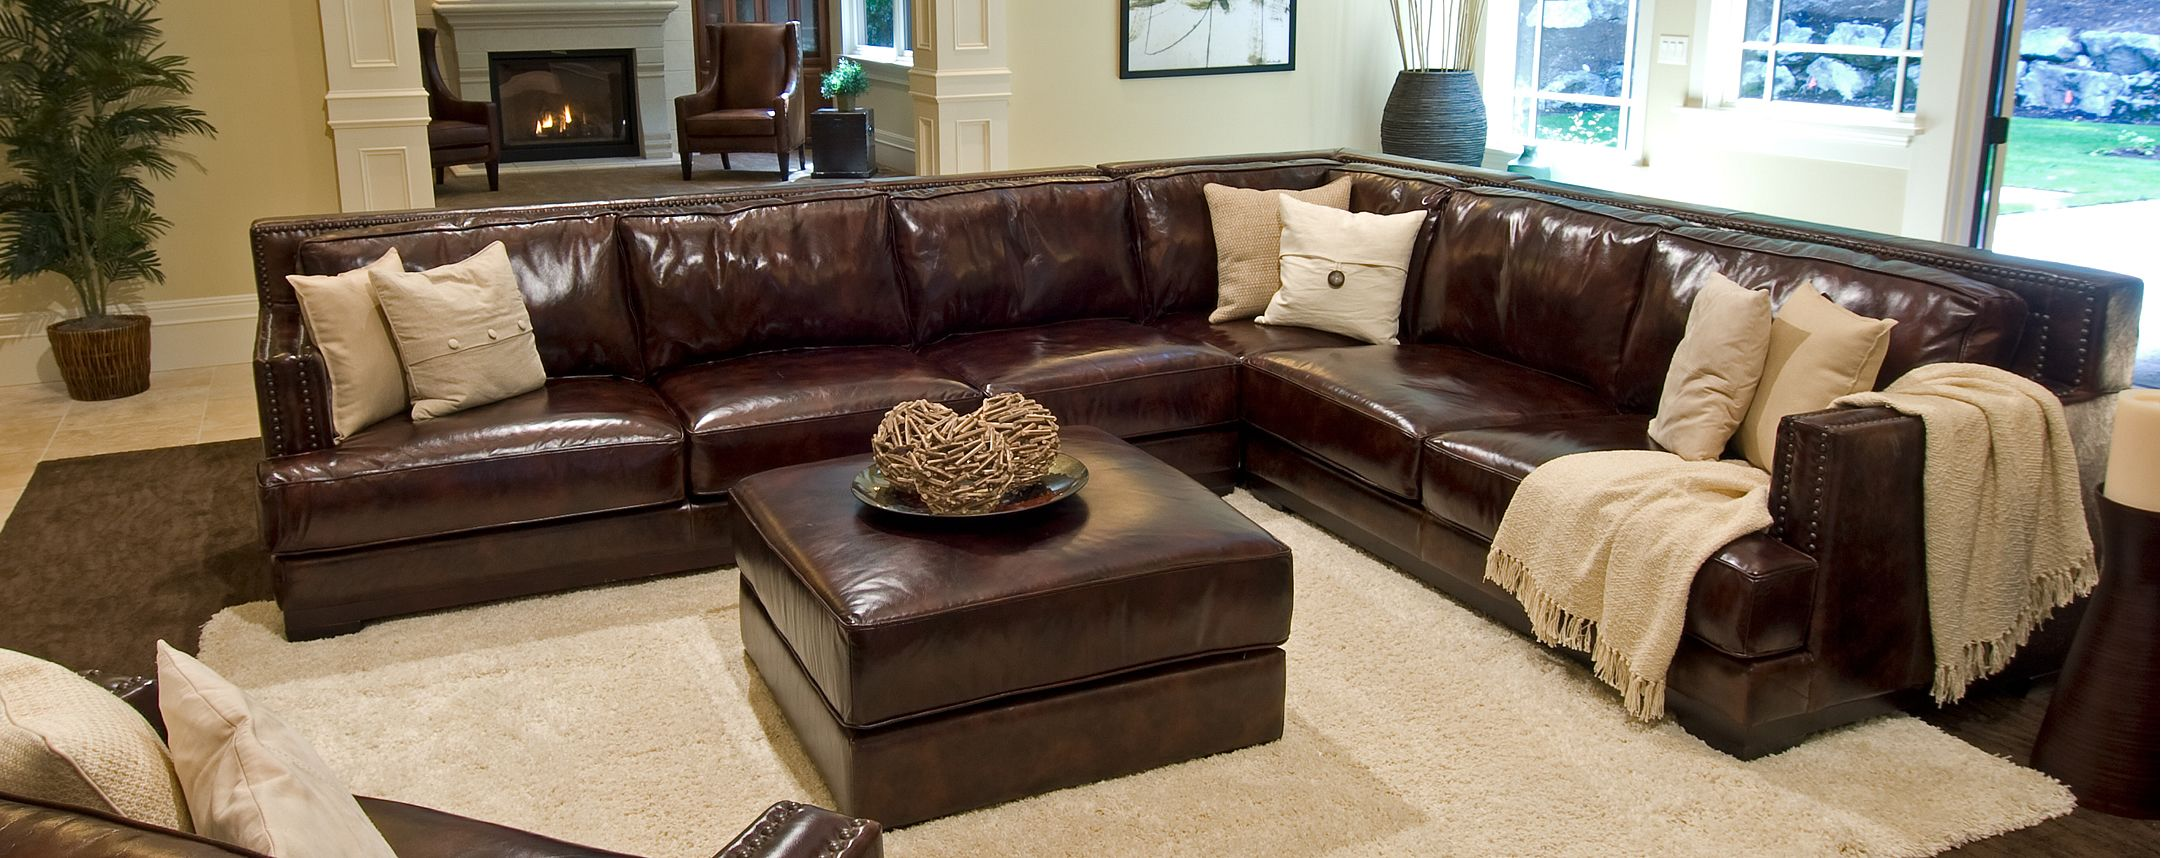 Pin by Syred Net on Sofas & Couches in 2019 | Leather sectional ...